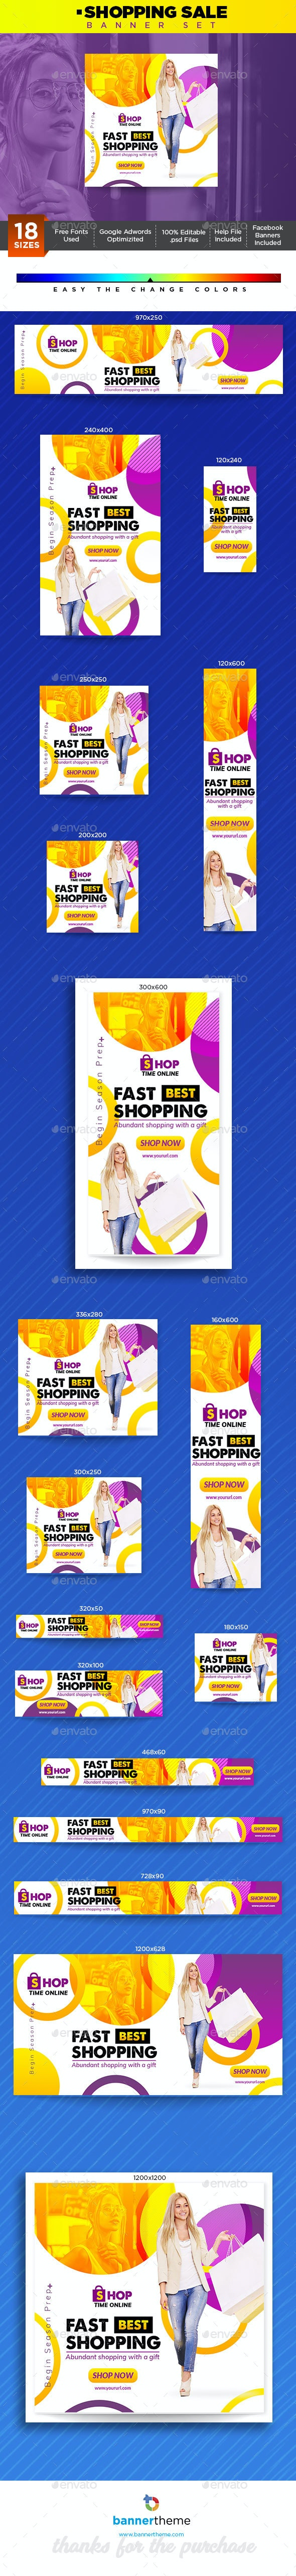 Shopping Banner - Banners & Ads Web Elements